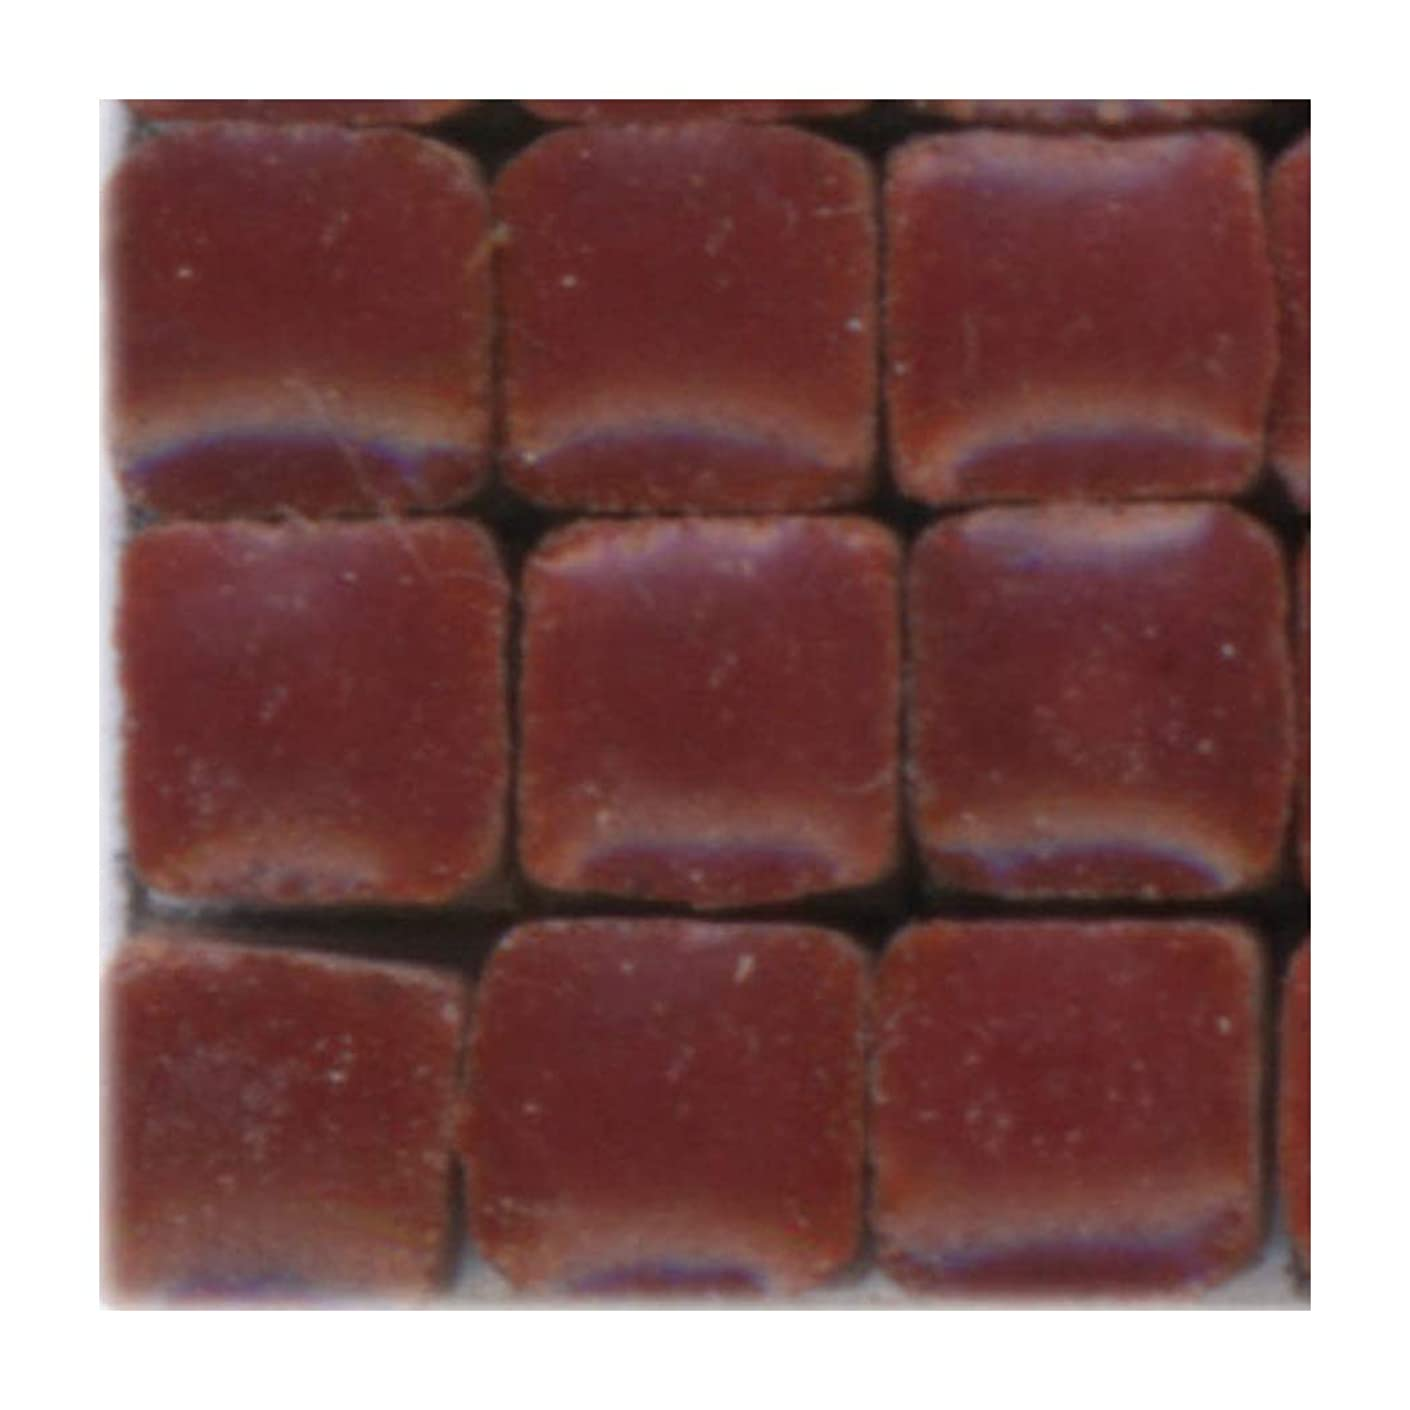 Mosaic-Minis(1/8 inch)(3x3x2mm), 1000 pieces, Wine red, RV01